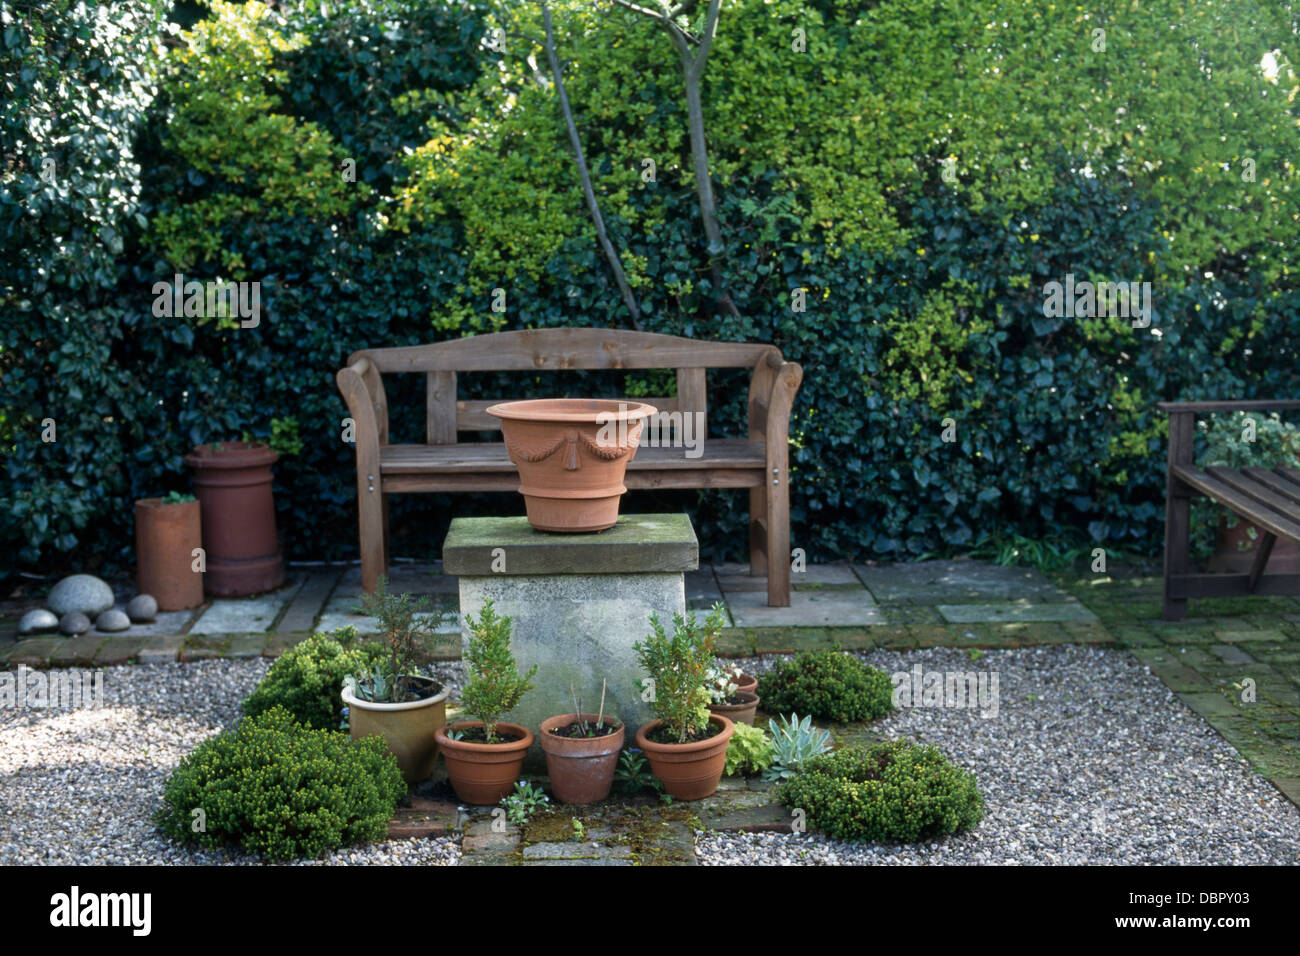 Small Planter Small Shrubs In Pots On Gravel Patio With Wooden Bench